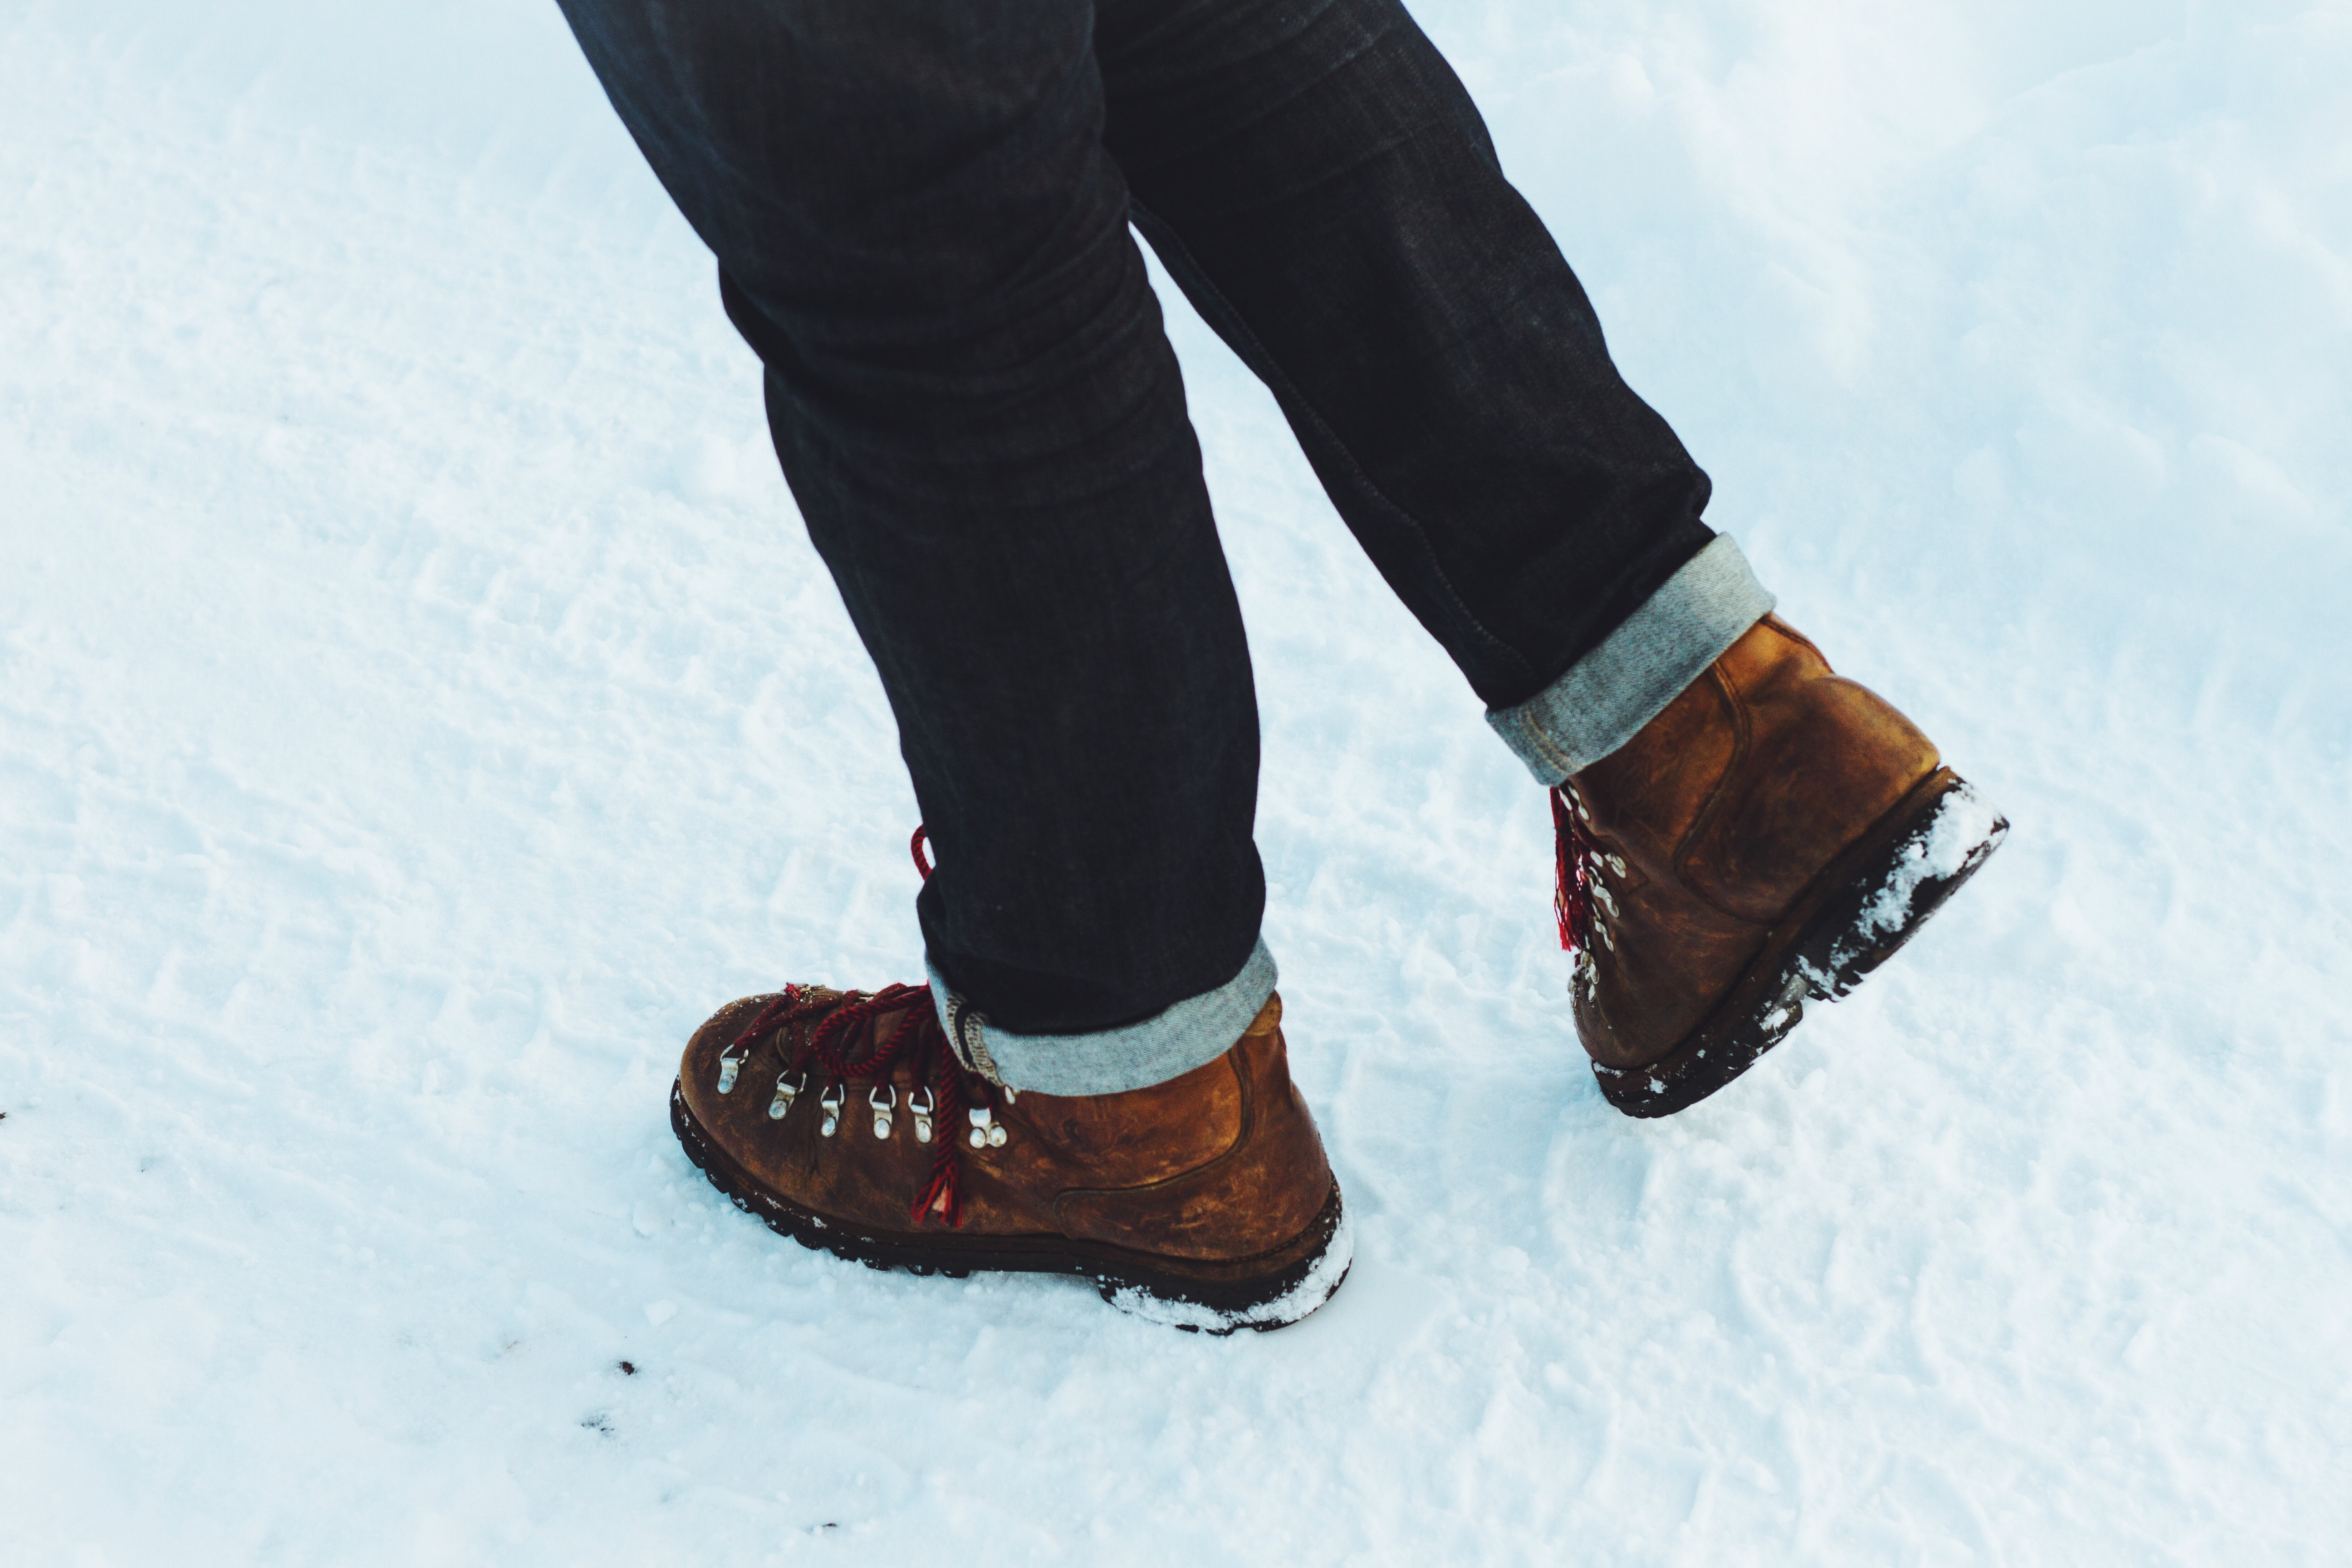 Brown winter fashion boots walking on snow